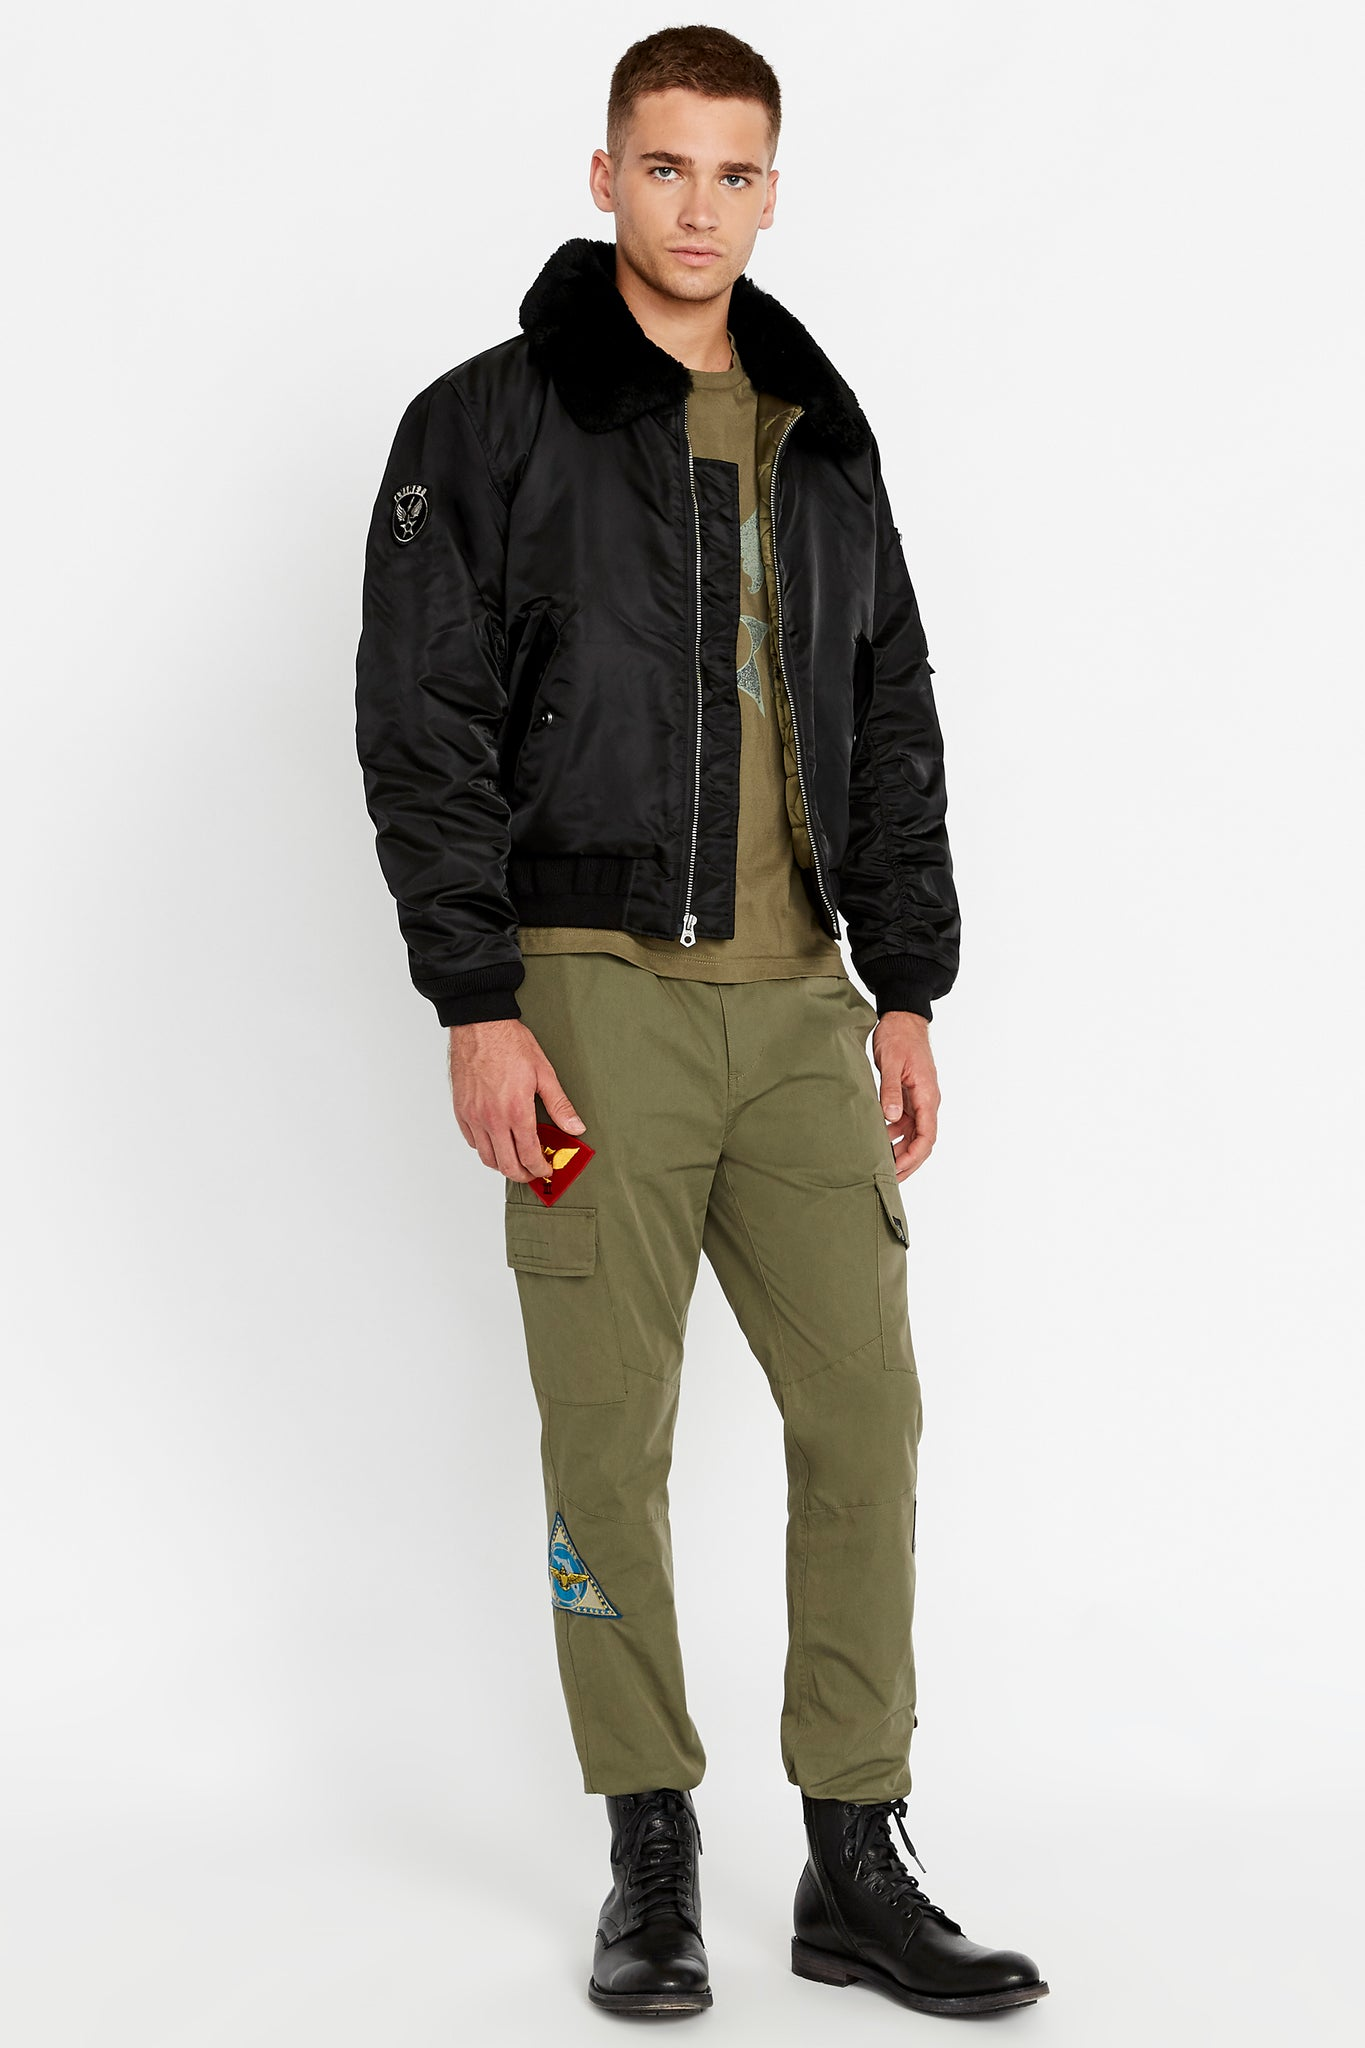 Full side view of men wearing an open black bomber jacket with a sherpa-lined collar and two side flap pockets and one patch on the right sleeve and olive pants